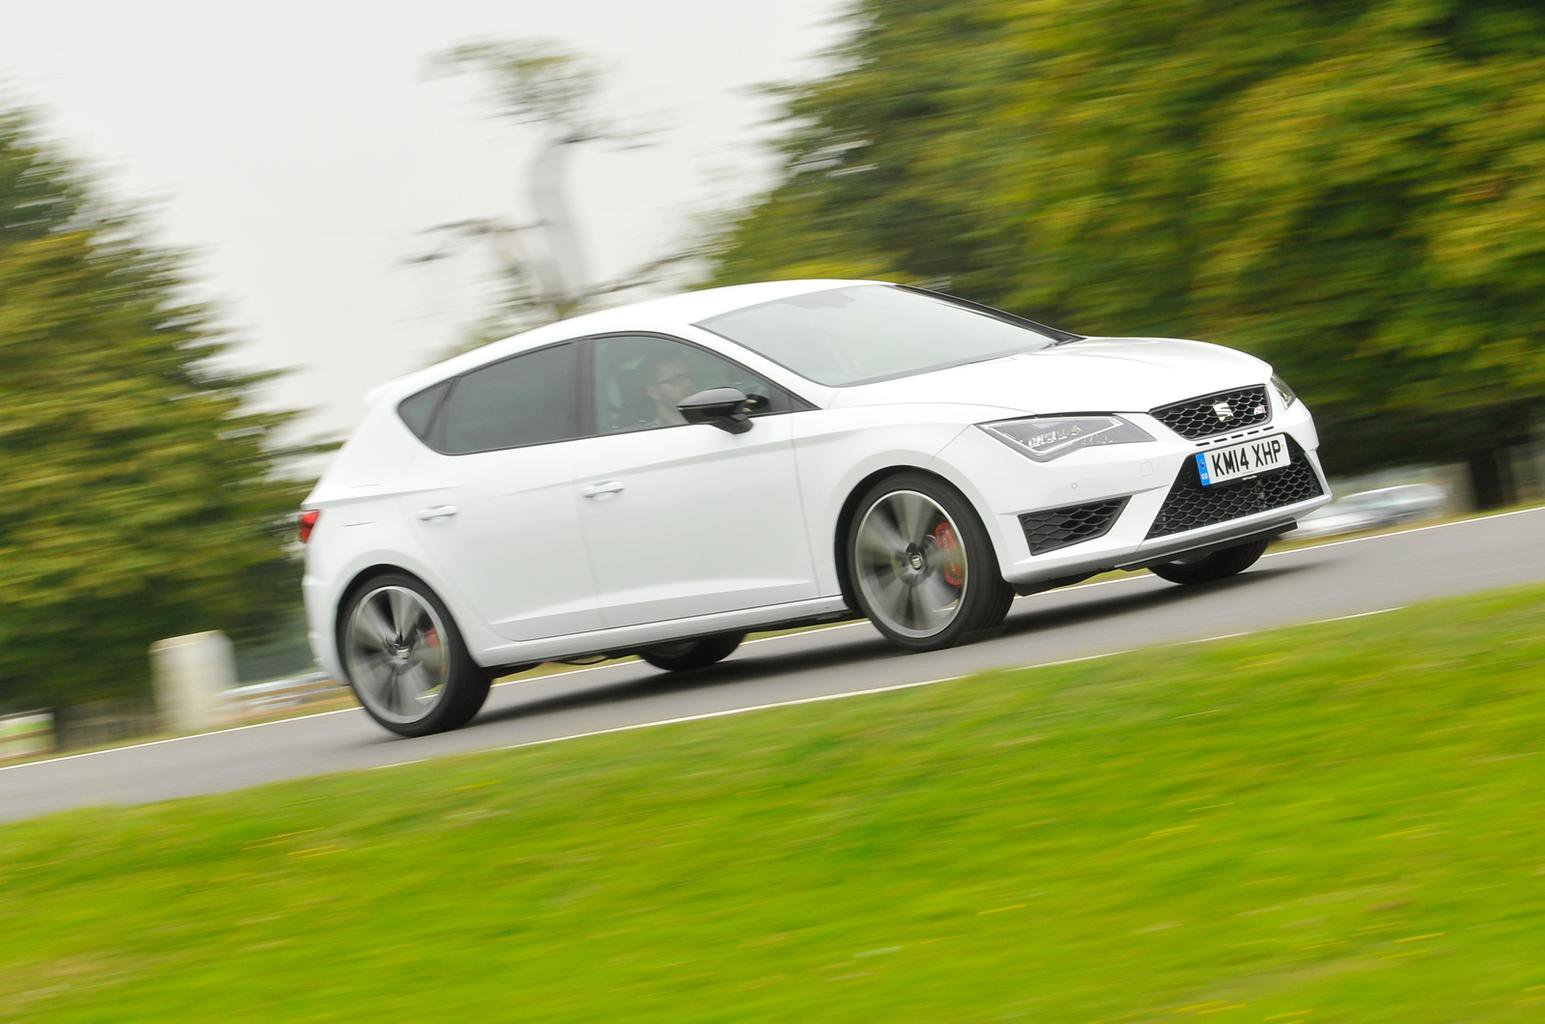 Deal of the day: Seat Leon Cupra